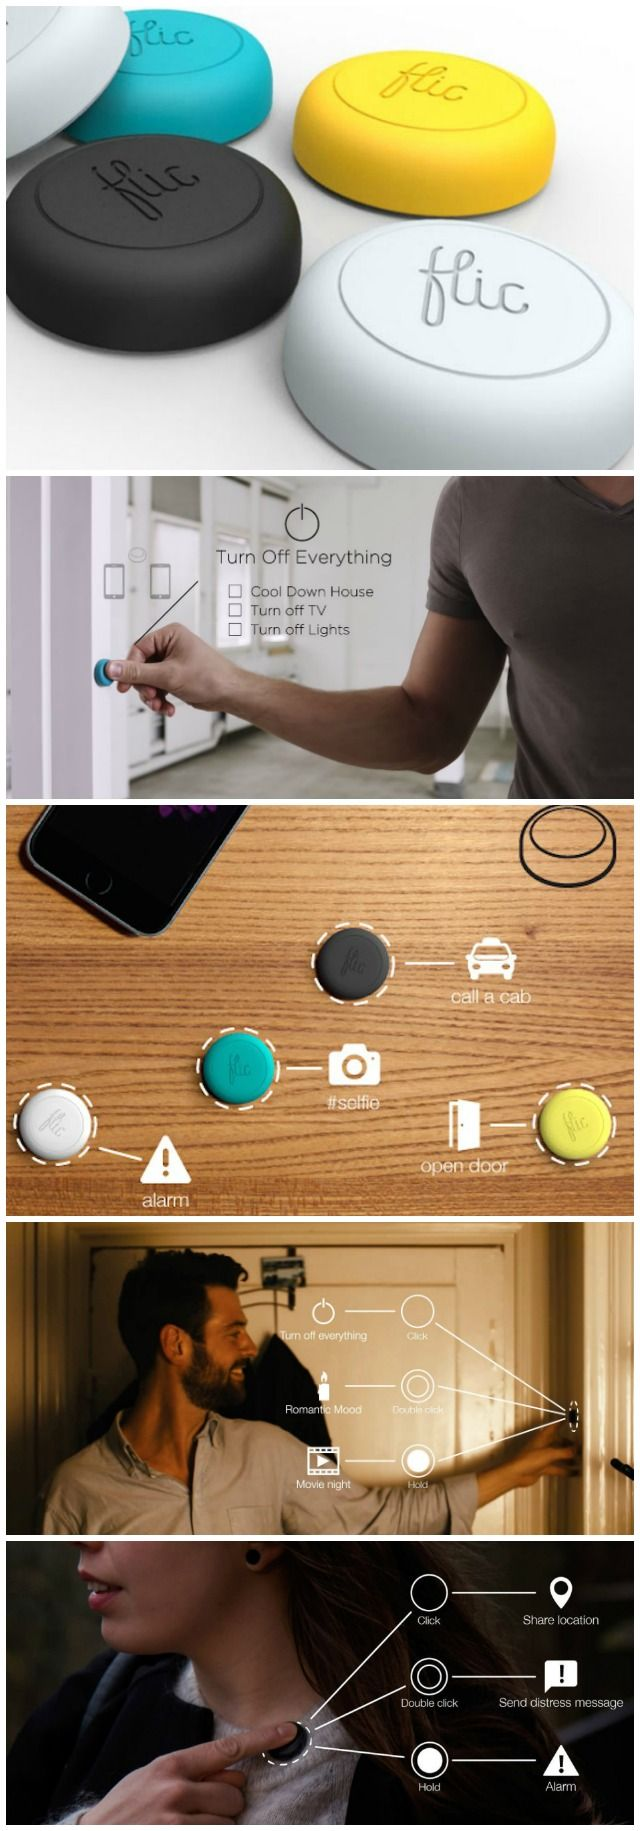 Flic can do so many things! From controlling your music to taking selfies to…